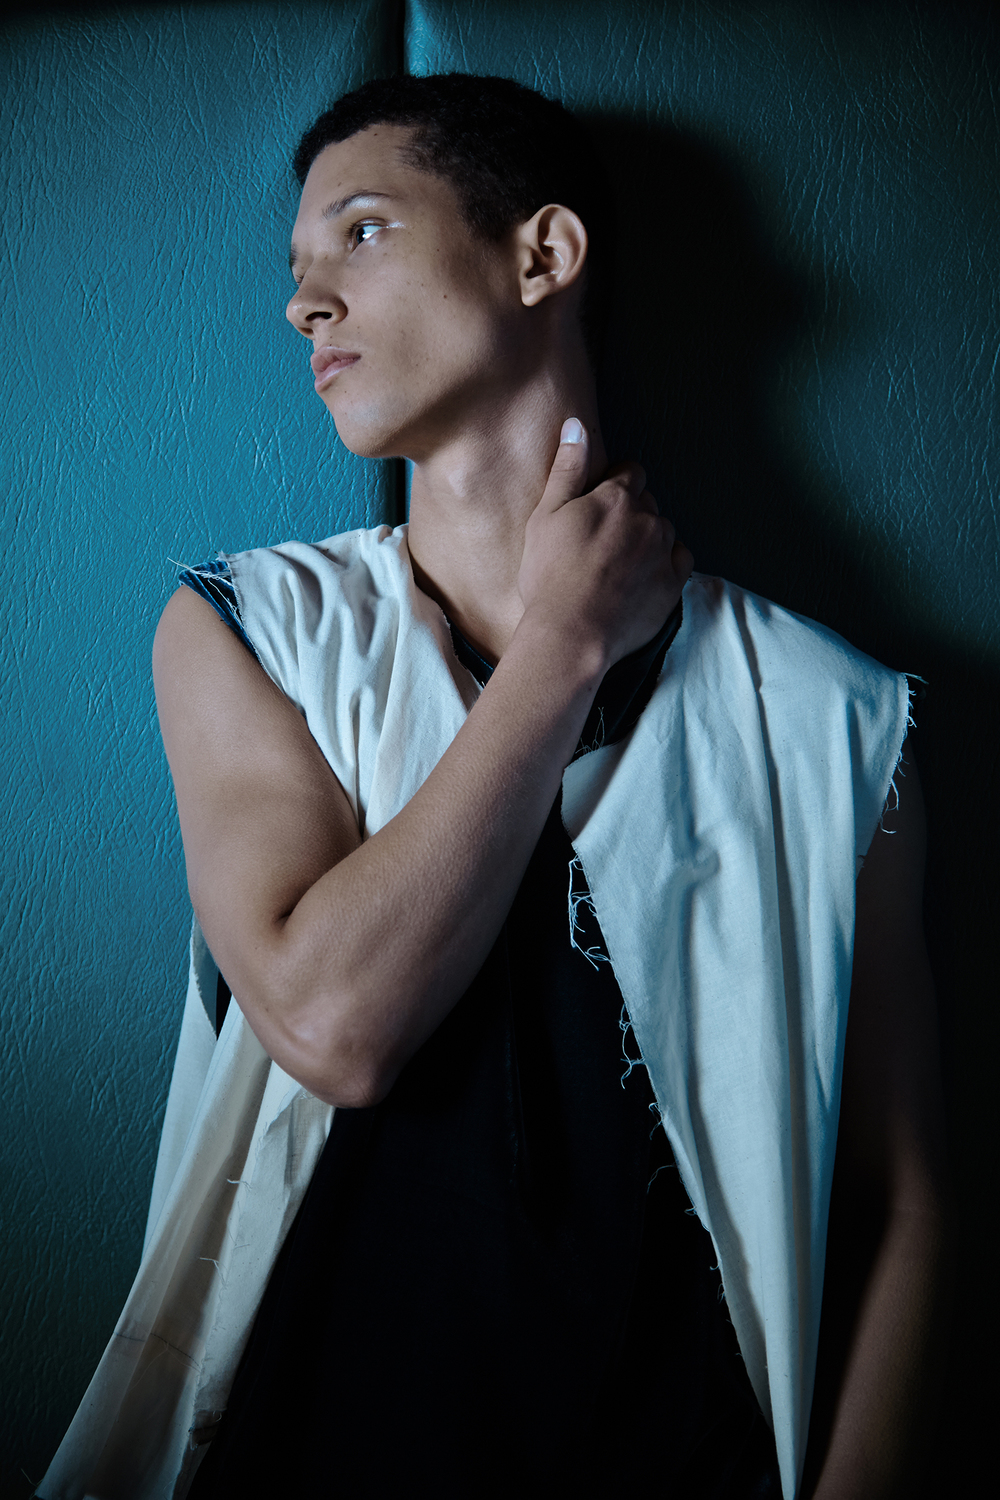 Velvet Tank by Cherng-Hanh Lee, BFA Menswear Design. Prototype Vest by James Nguyen, MFA Menswear Design.